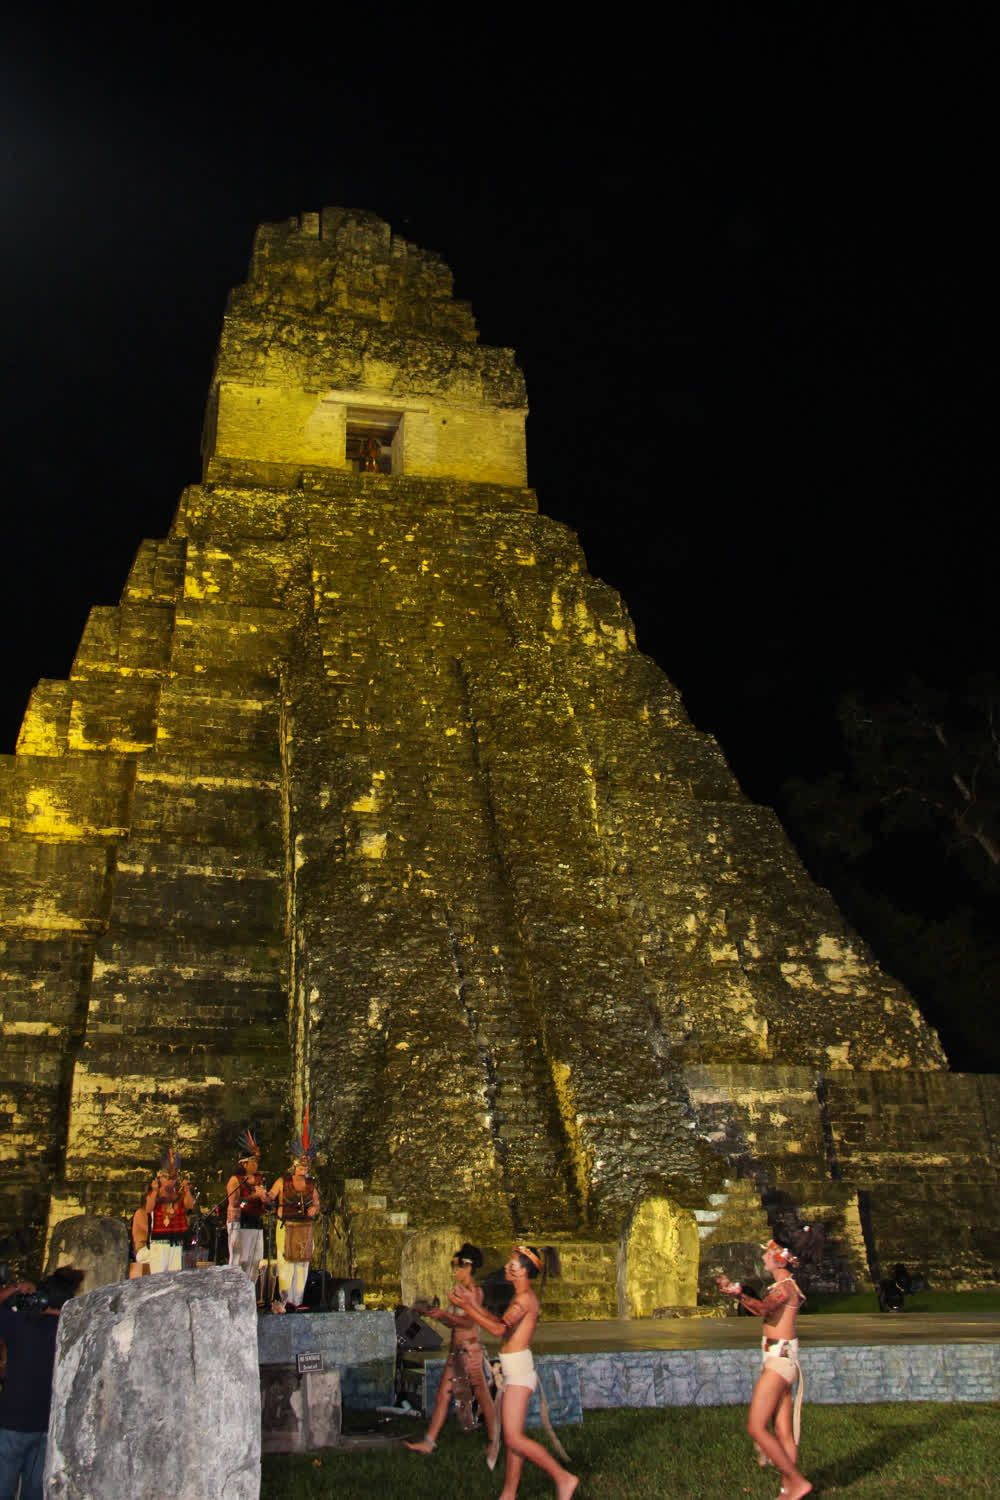 Celebration at night Tikal Guatemala